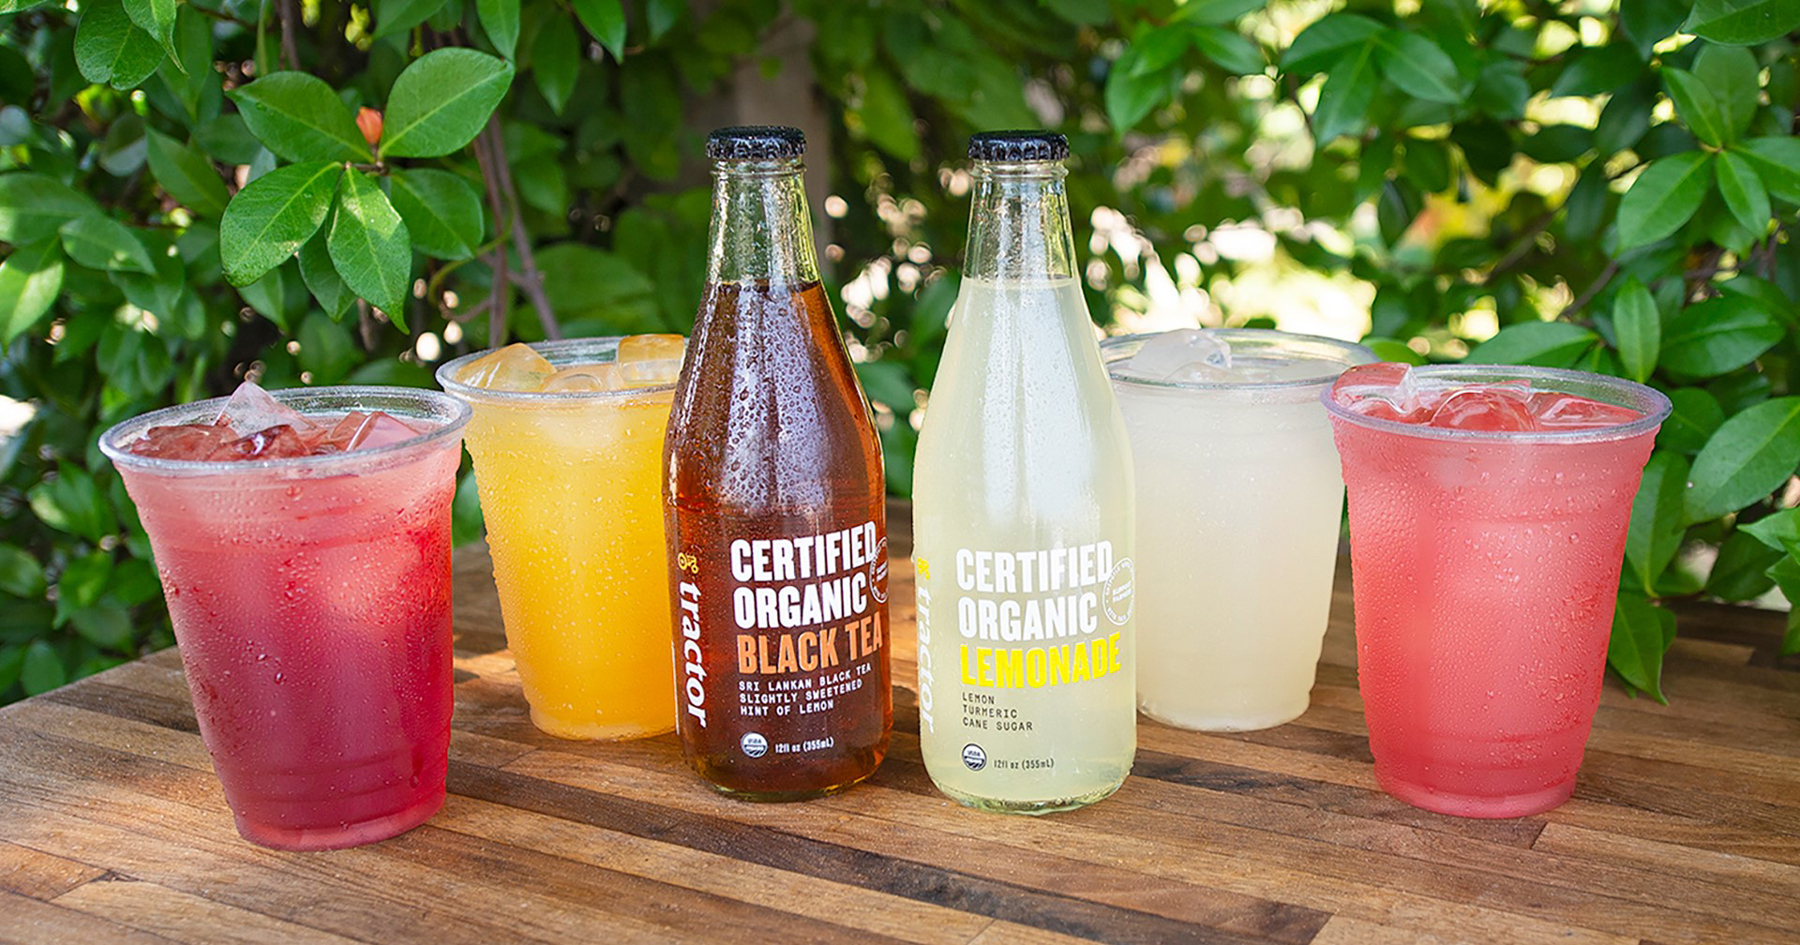 Chipotle adds a line of new drinks   Restaurant business online